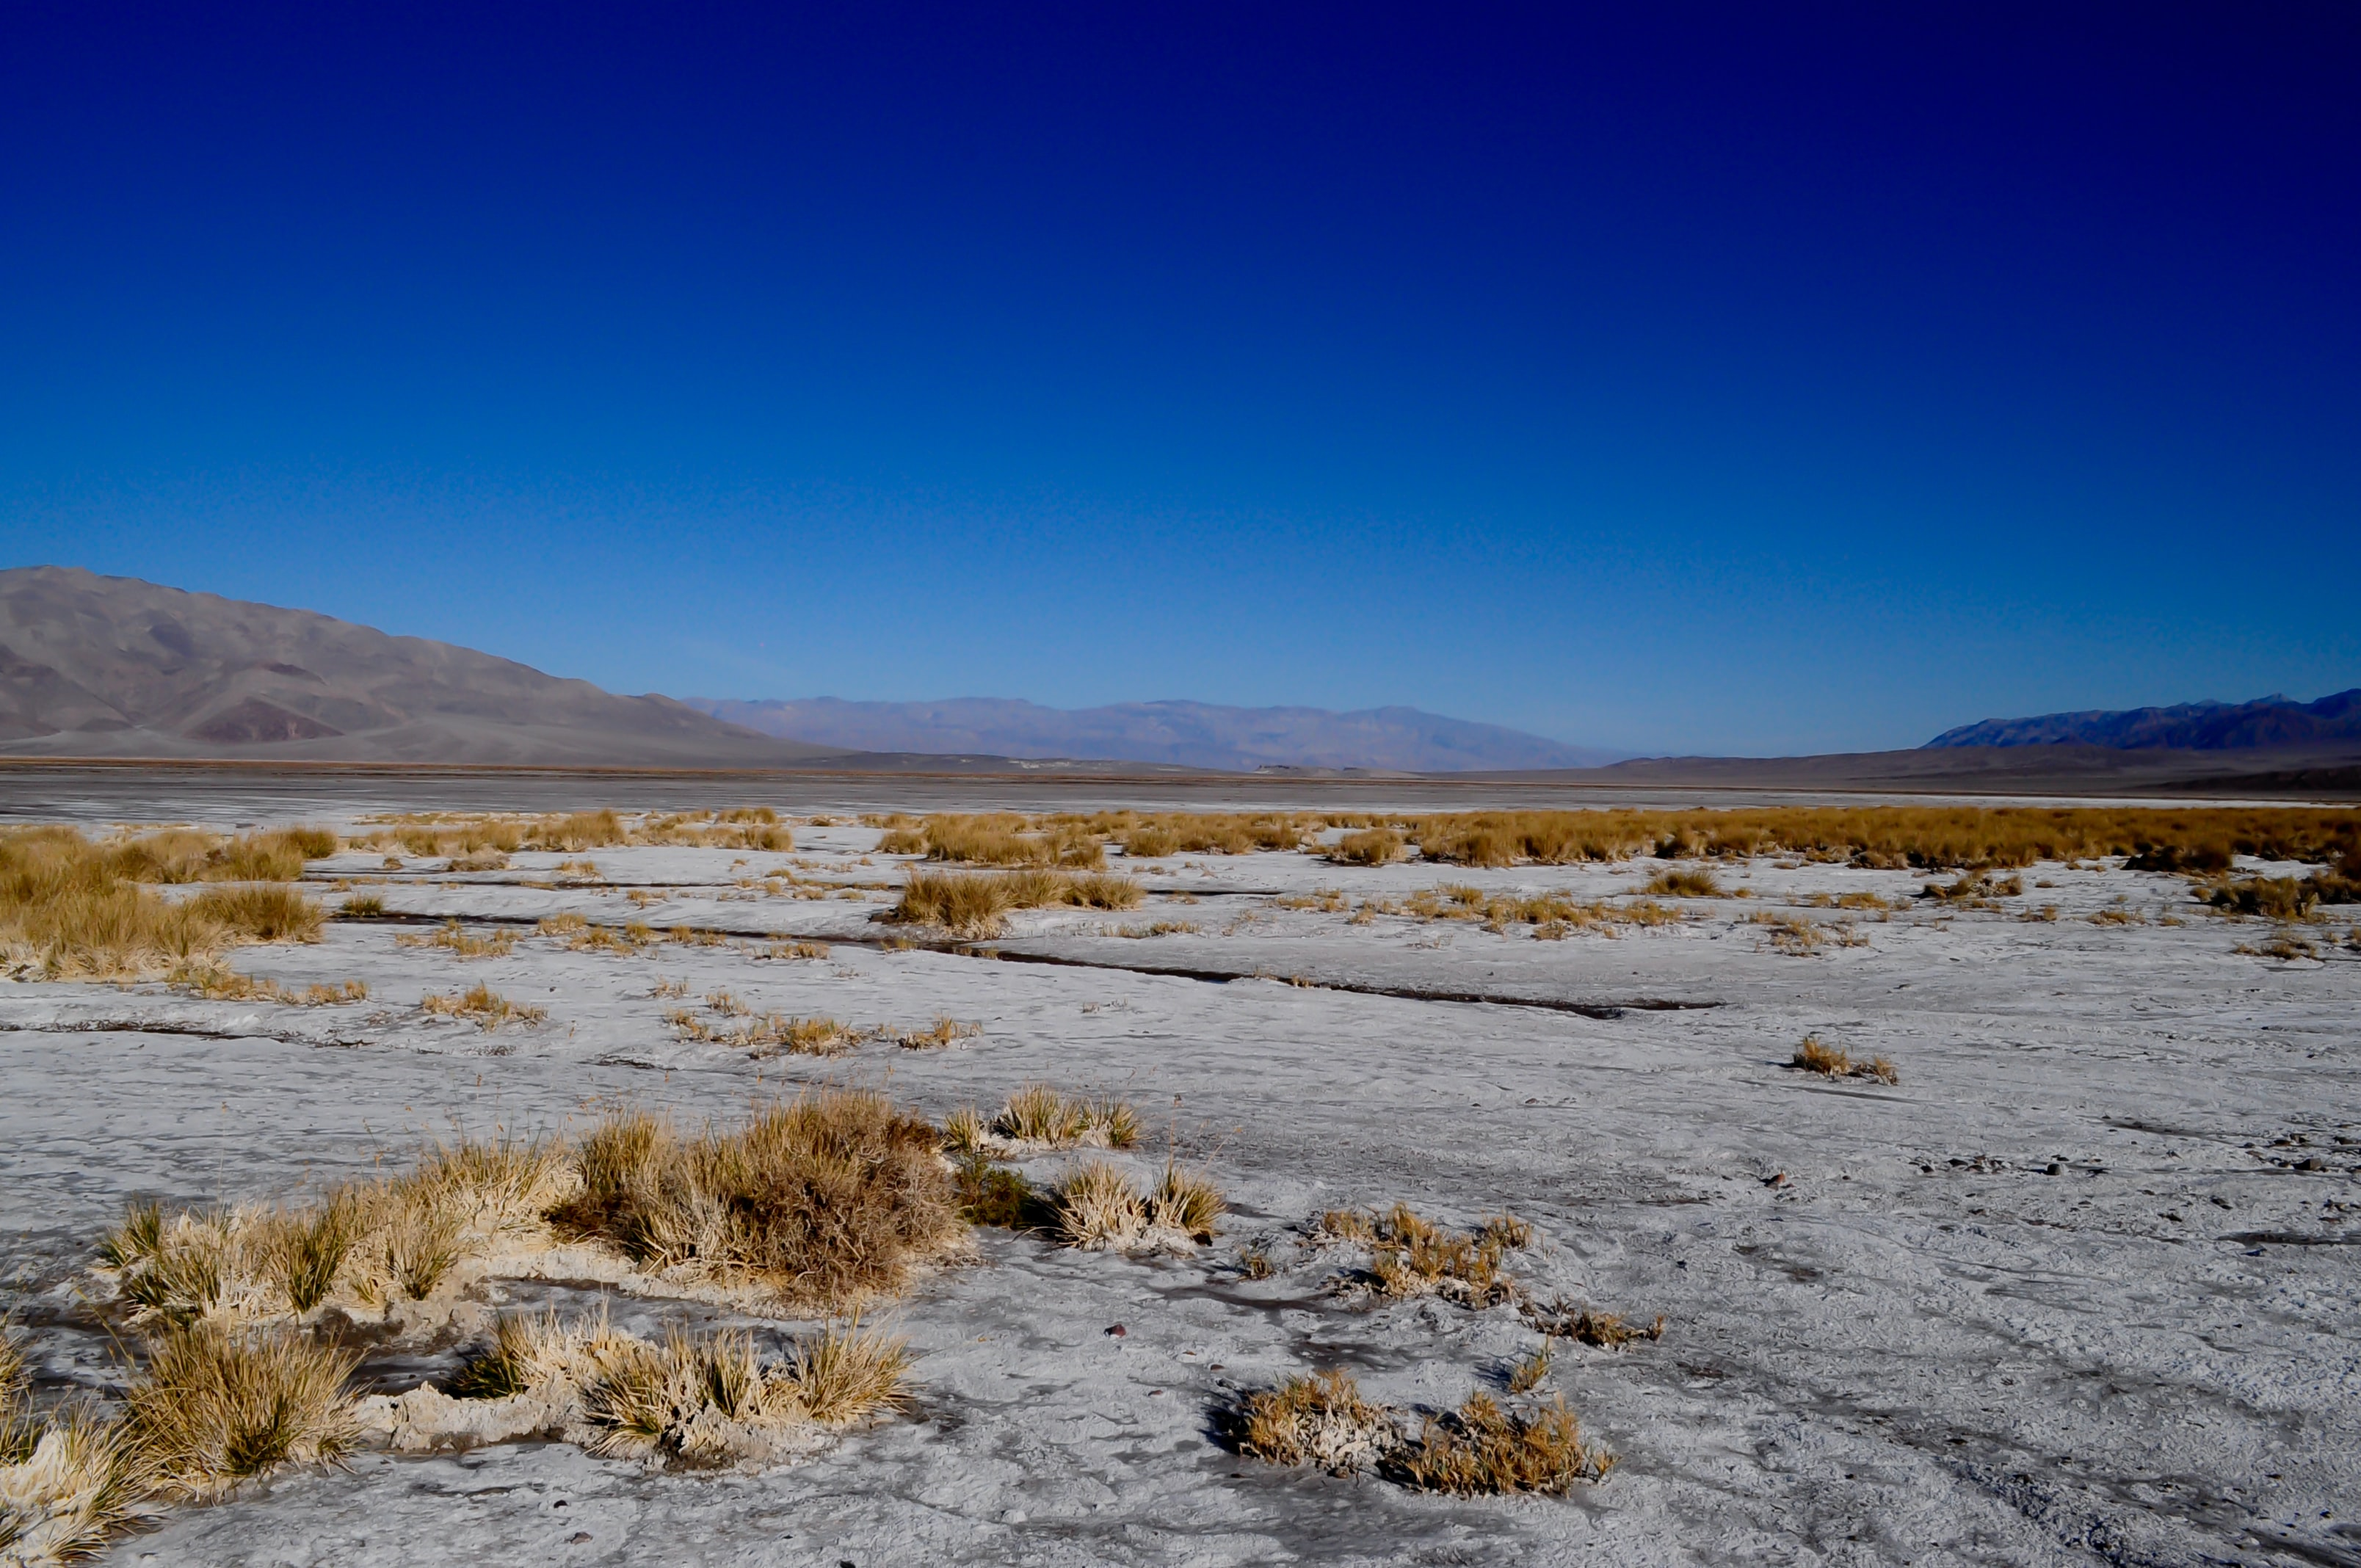 Desolate desert terrain and blue sky in Death Valley